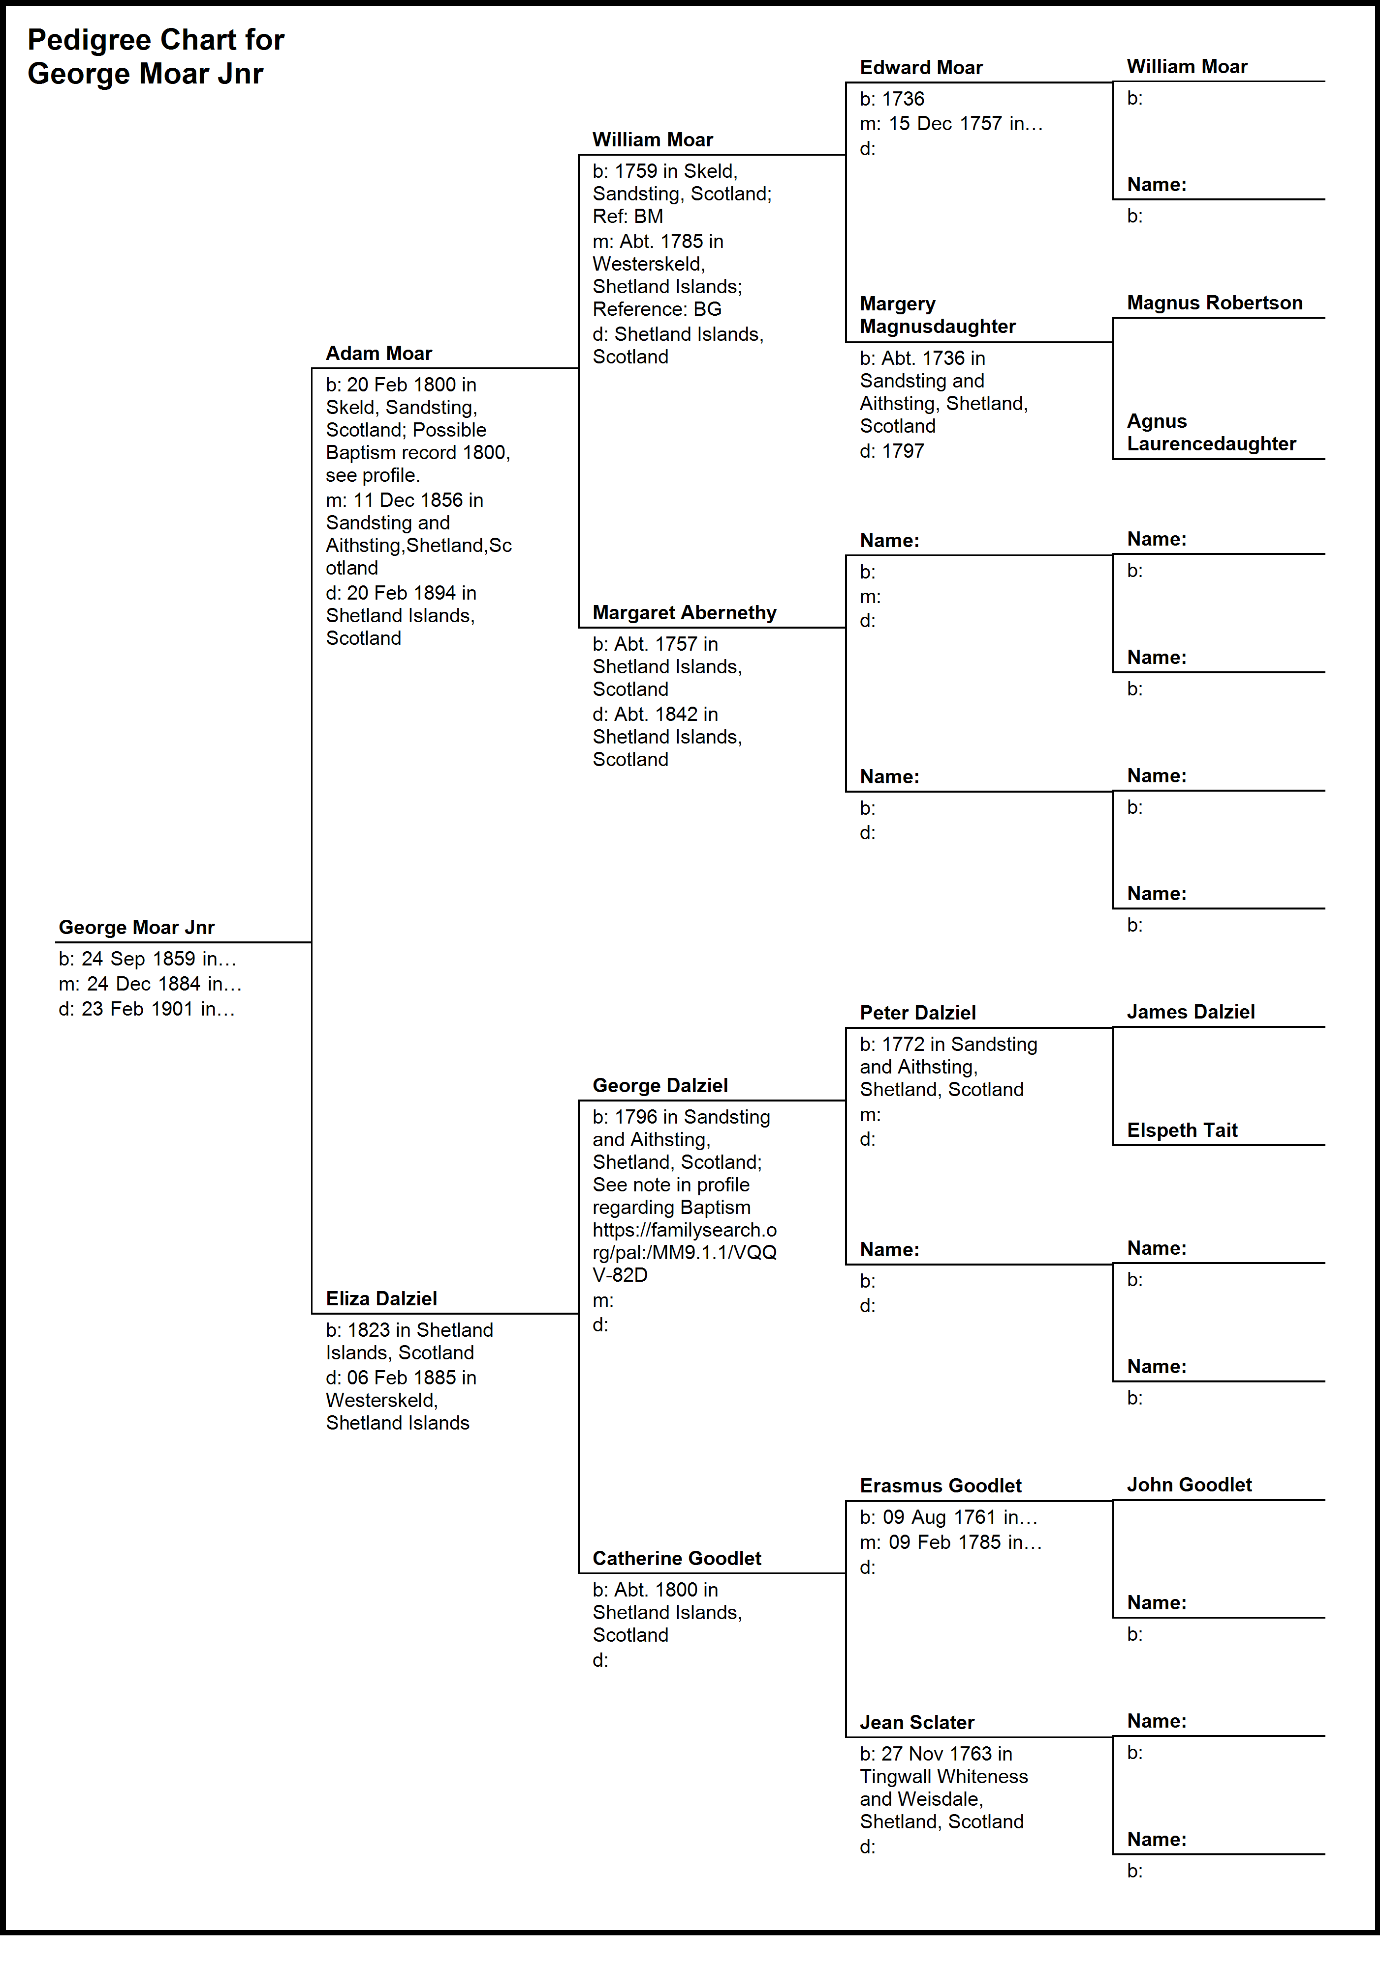 C:\Users\Virginia Rundle\Dropbox\VR\Ancestry Stuff\Moar\Pedigree Chart for George Moar Jnr.bmp